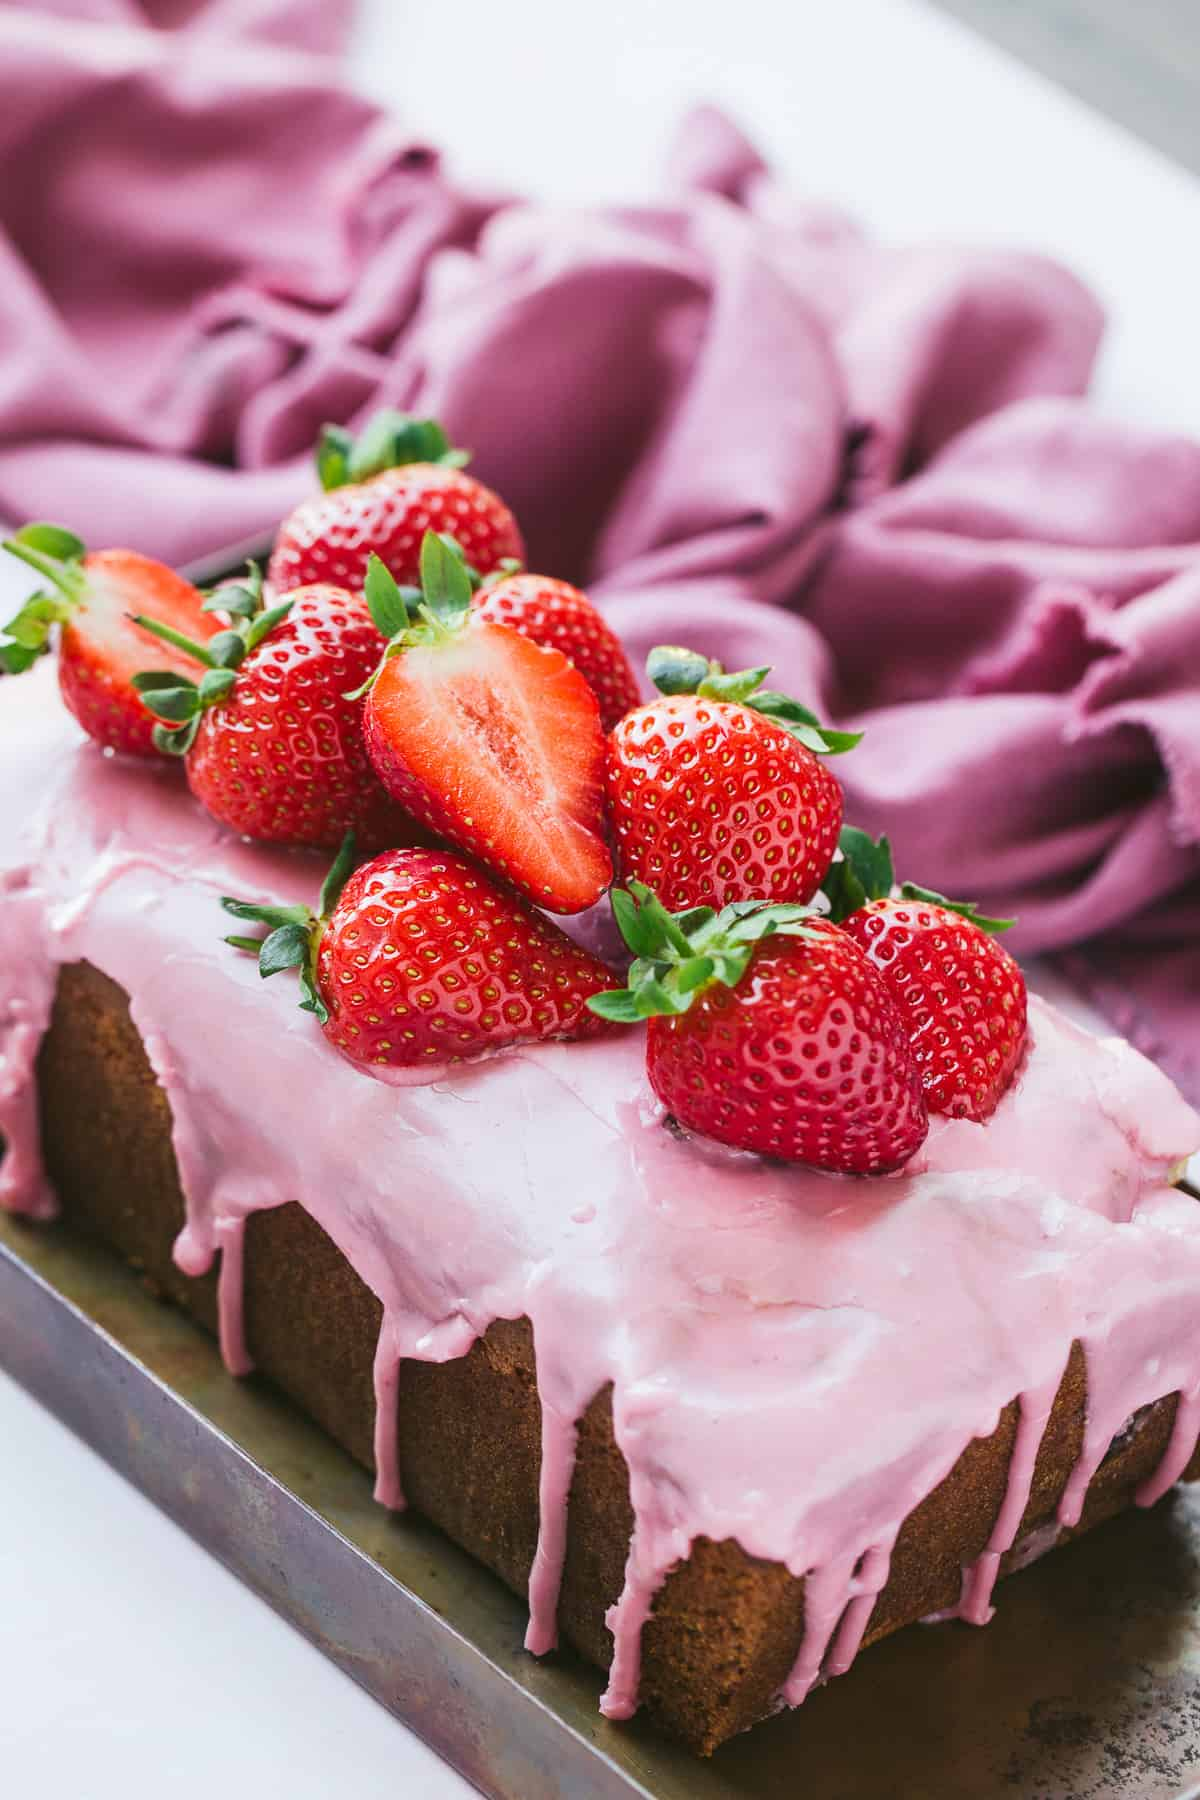 A strawberry bread with a pink coloured glaze.